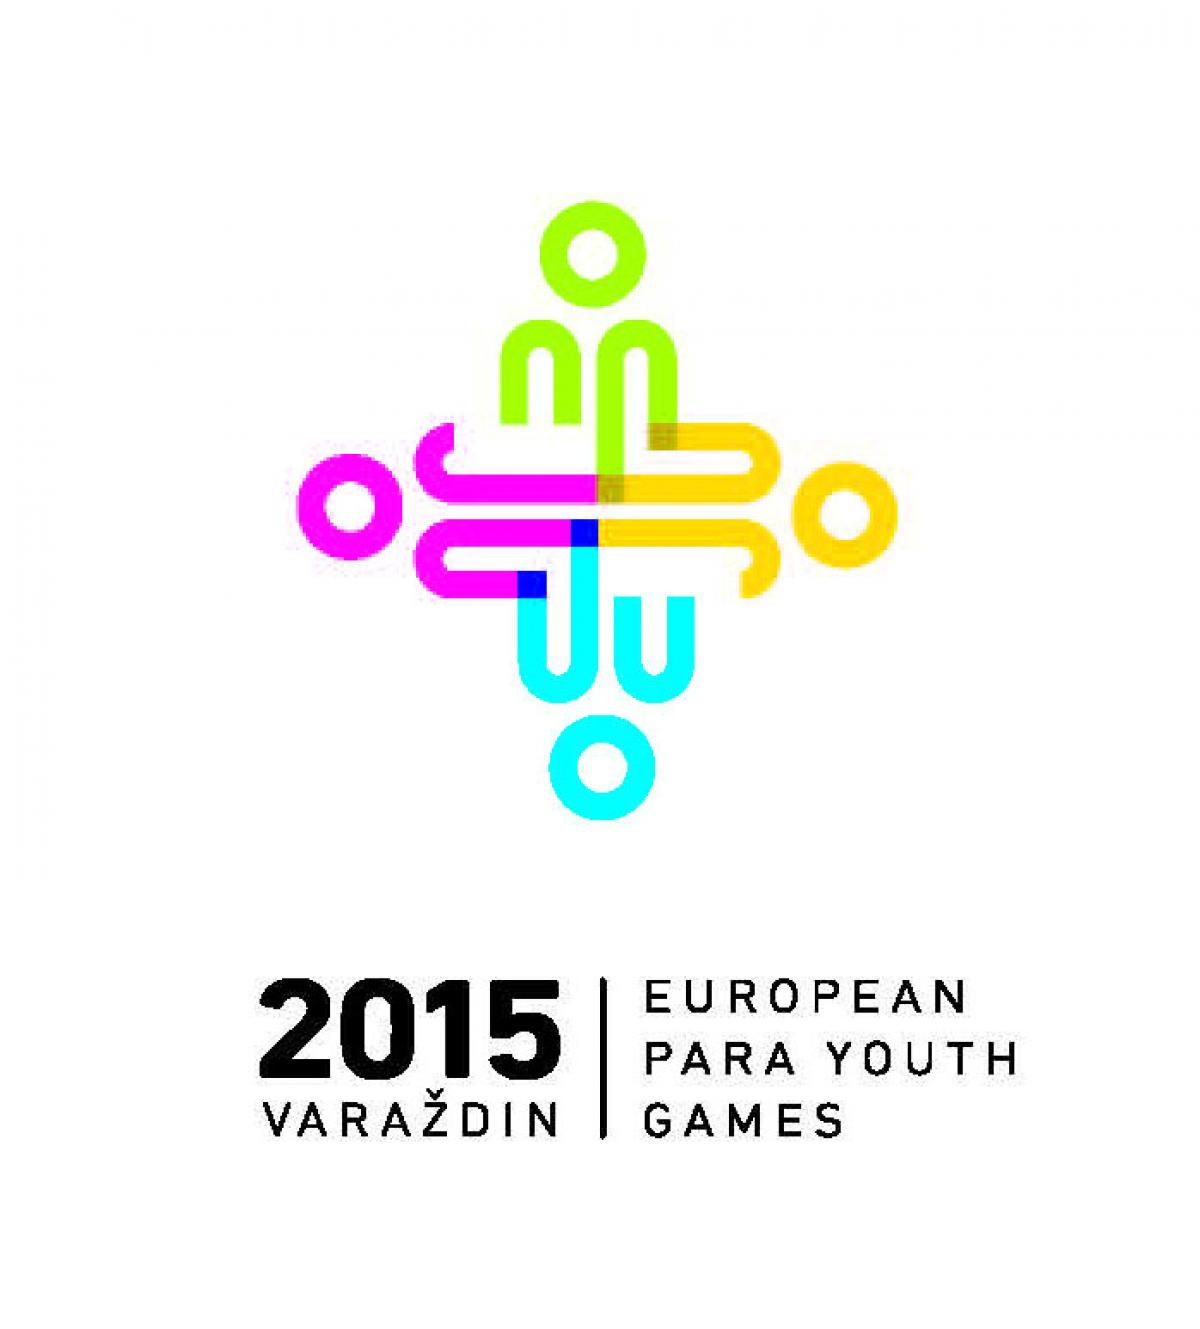 European Para Youth Games 2015 logo